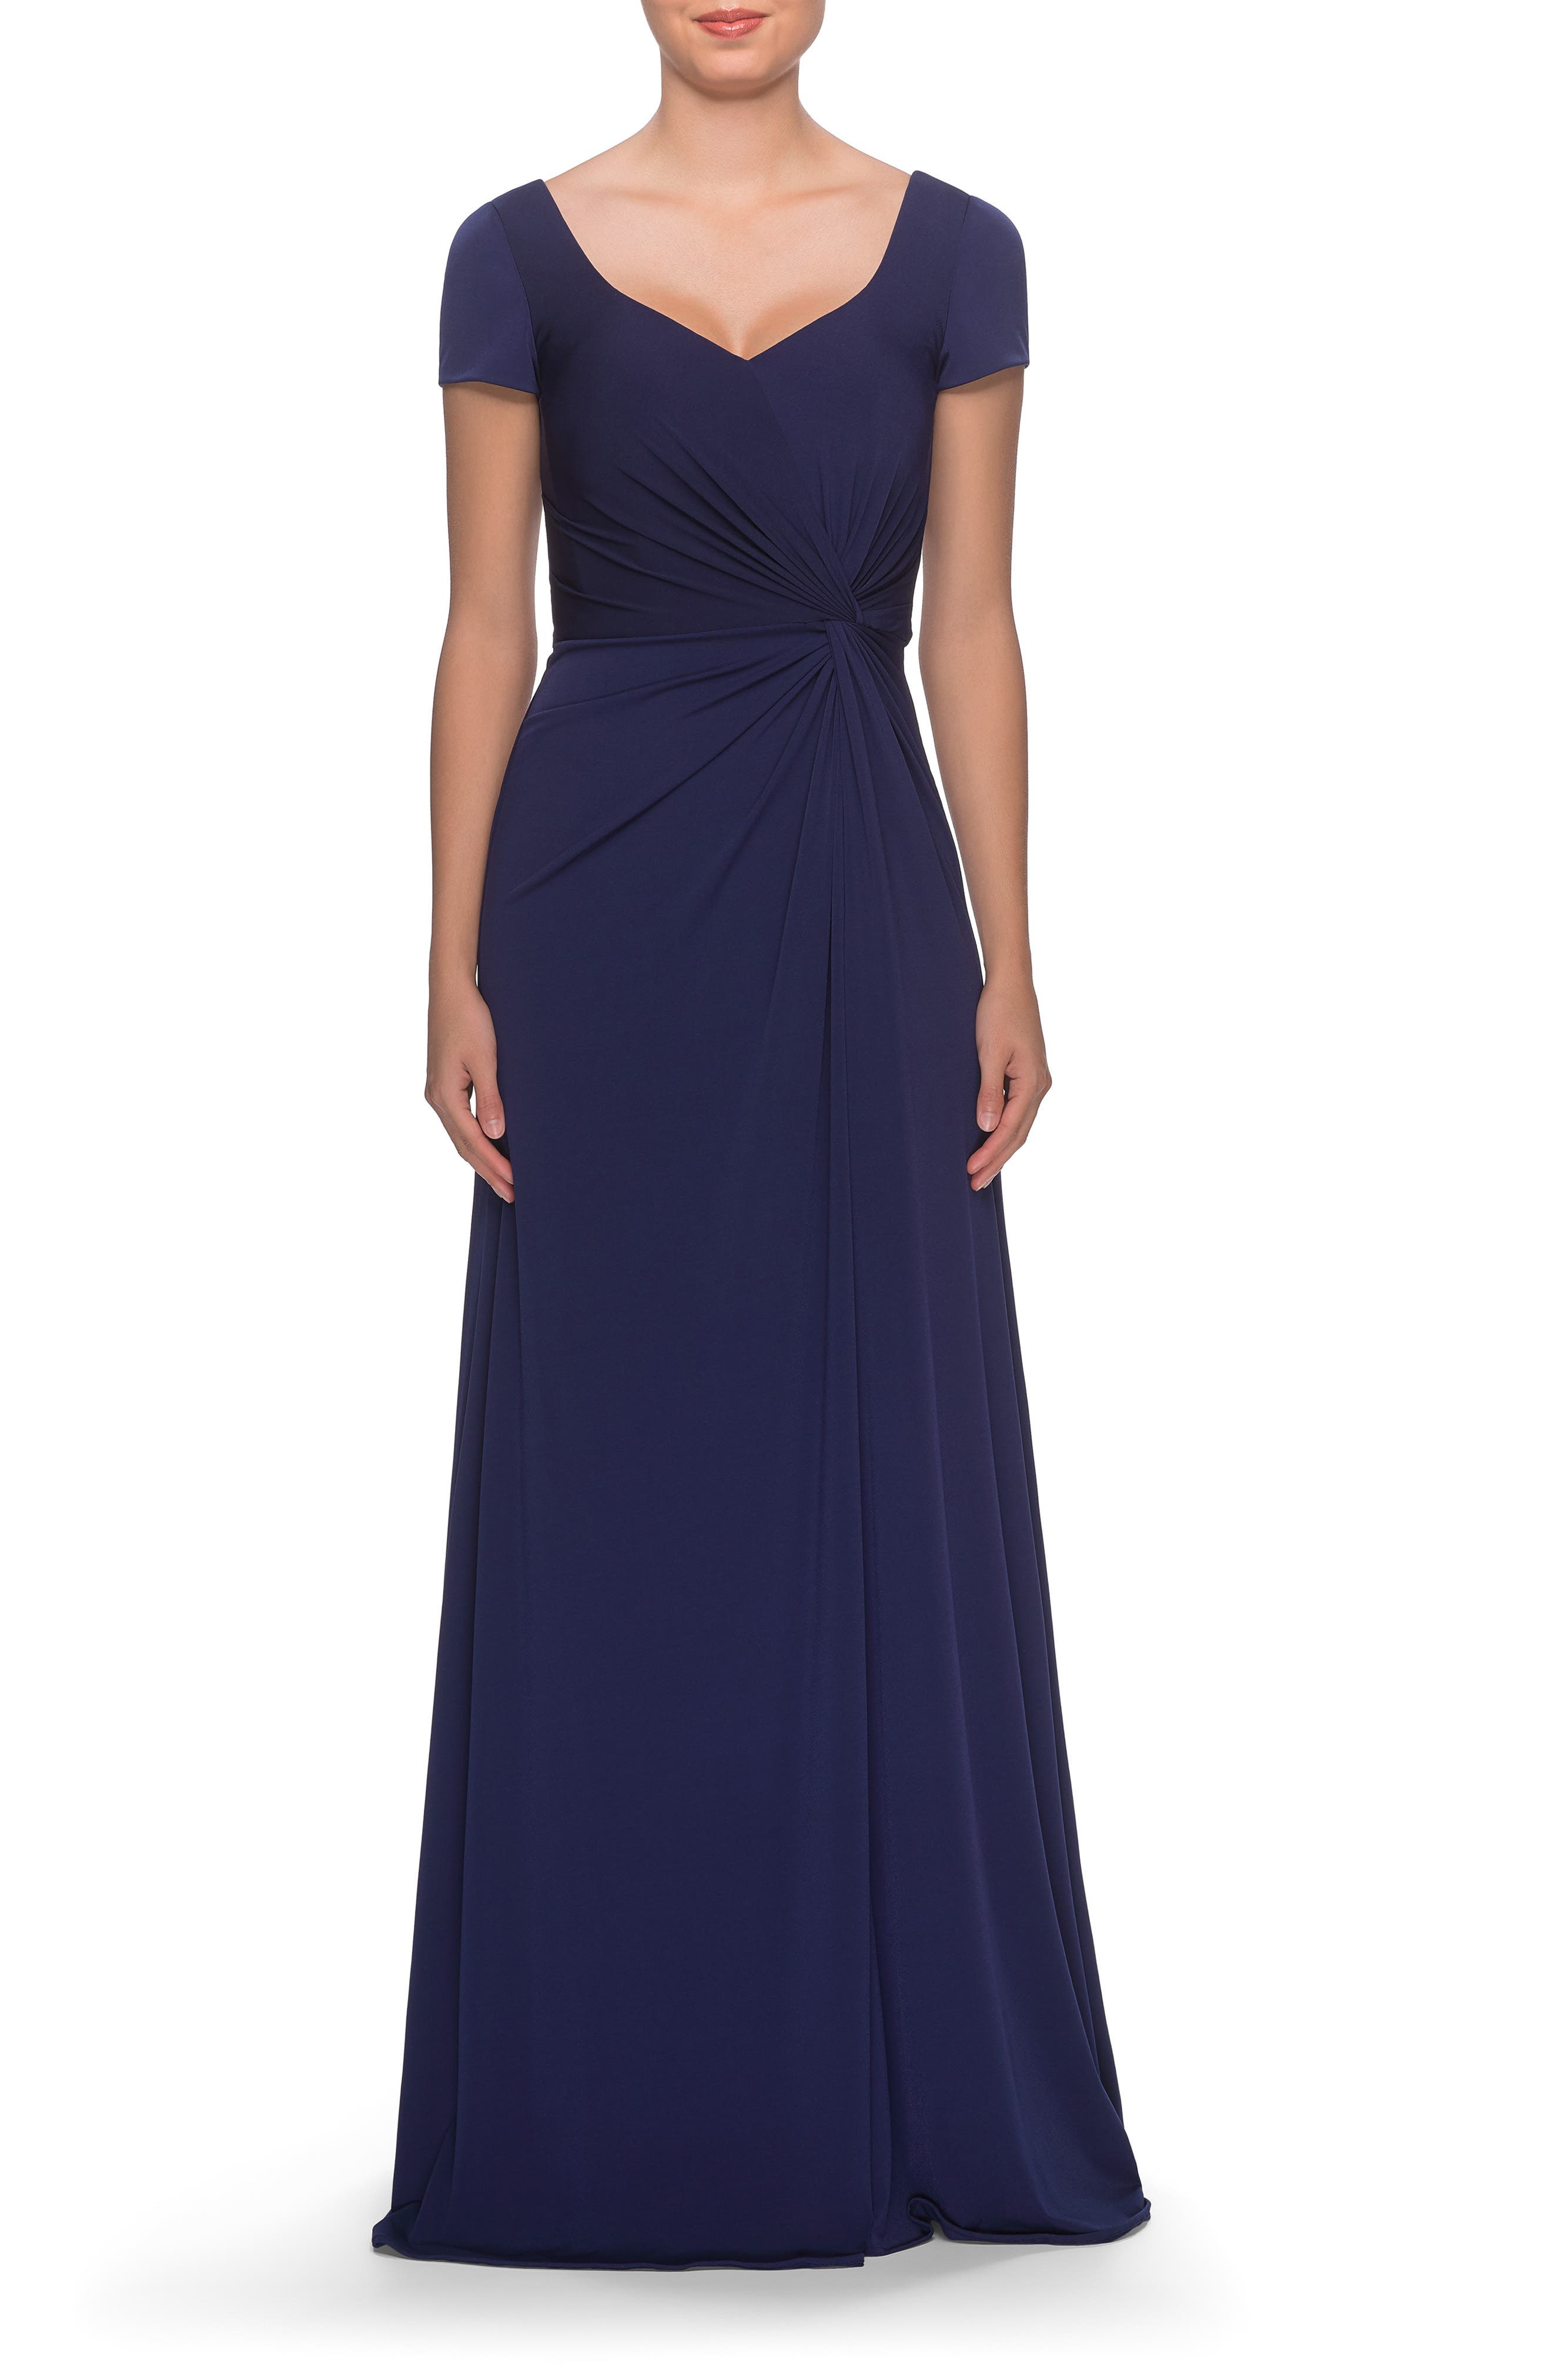 1950s Formal Dresses & Evening Gowns to Buy Womens La Femme Twist Front Jersey Gown Size 14 - Blue $318.00 AT vintagedancer.com